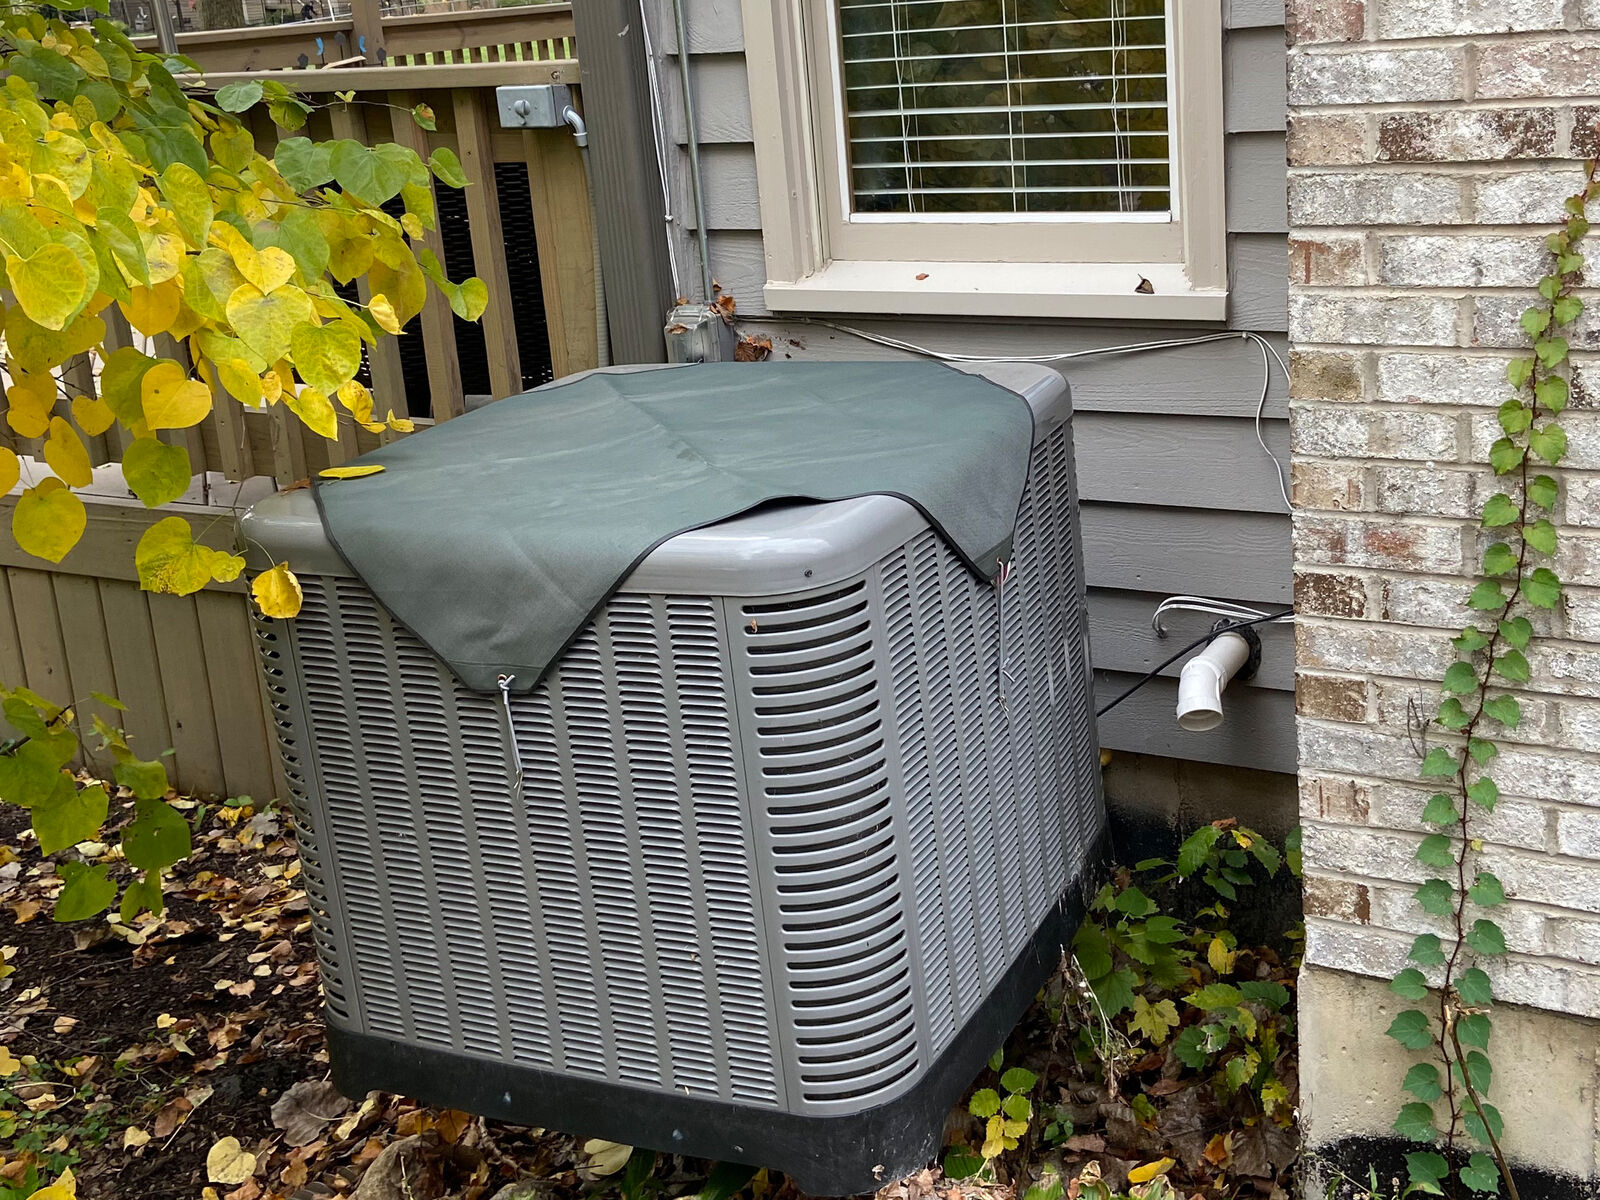 What to Consider While Planning on Getting an Air Conditioner Cover?